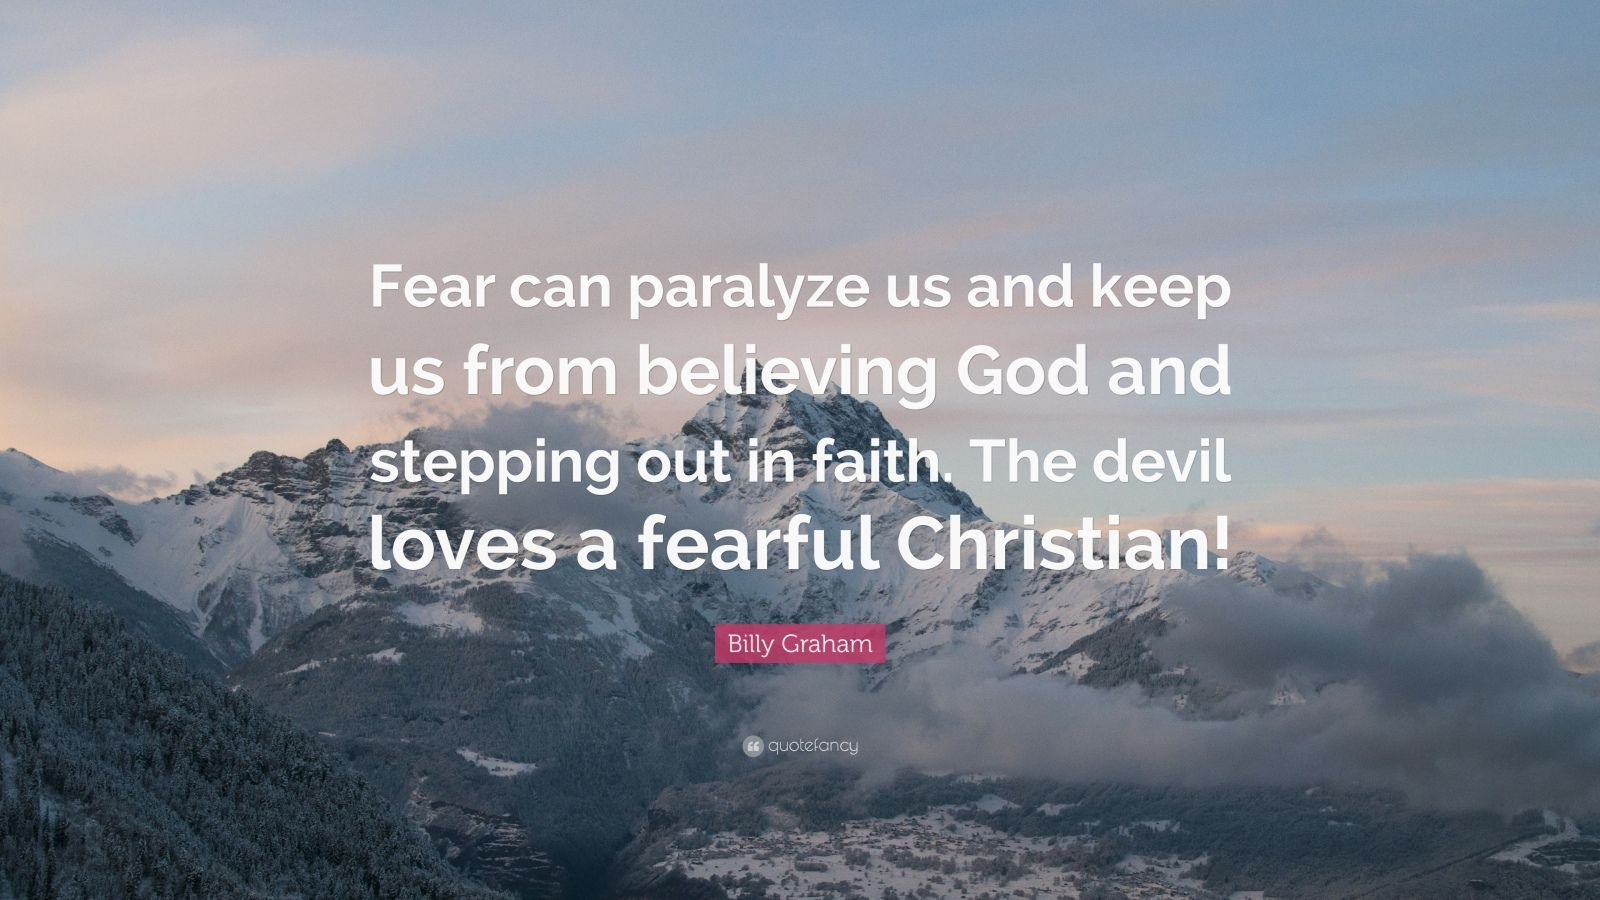 """Billy Graham Quote: """"Fear can paralyze us and keep us from believing God and stepping out in faith. The devil loves a fearful Christian!"""""""